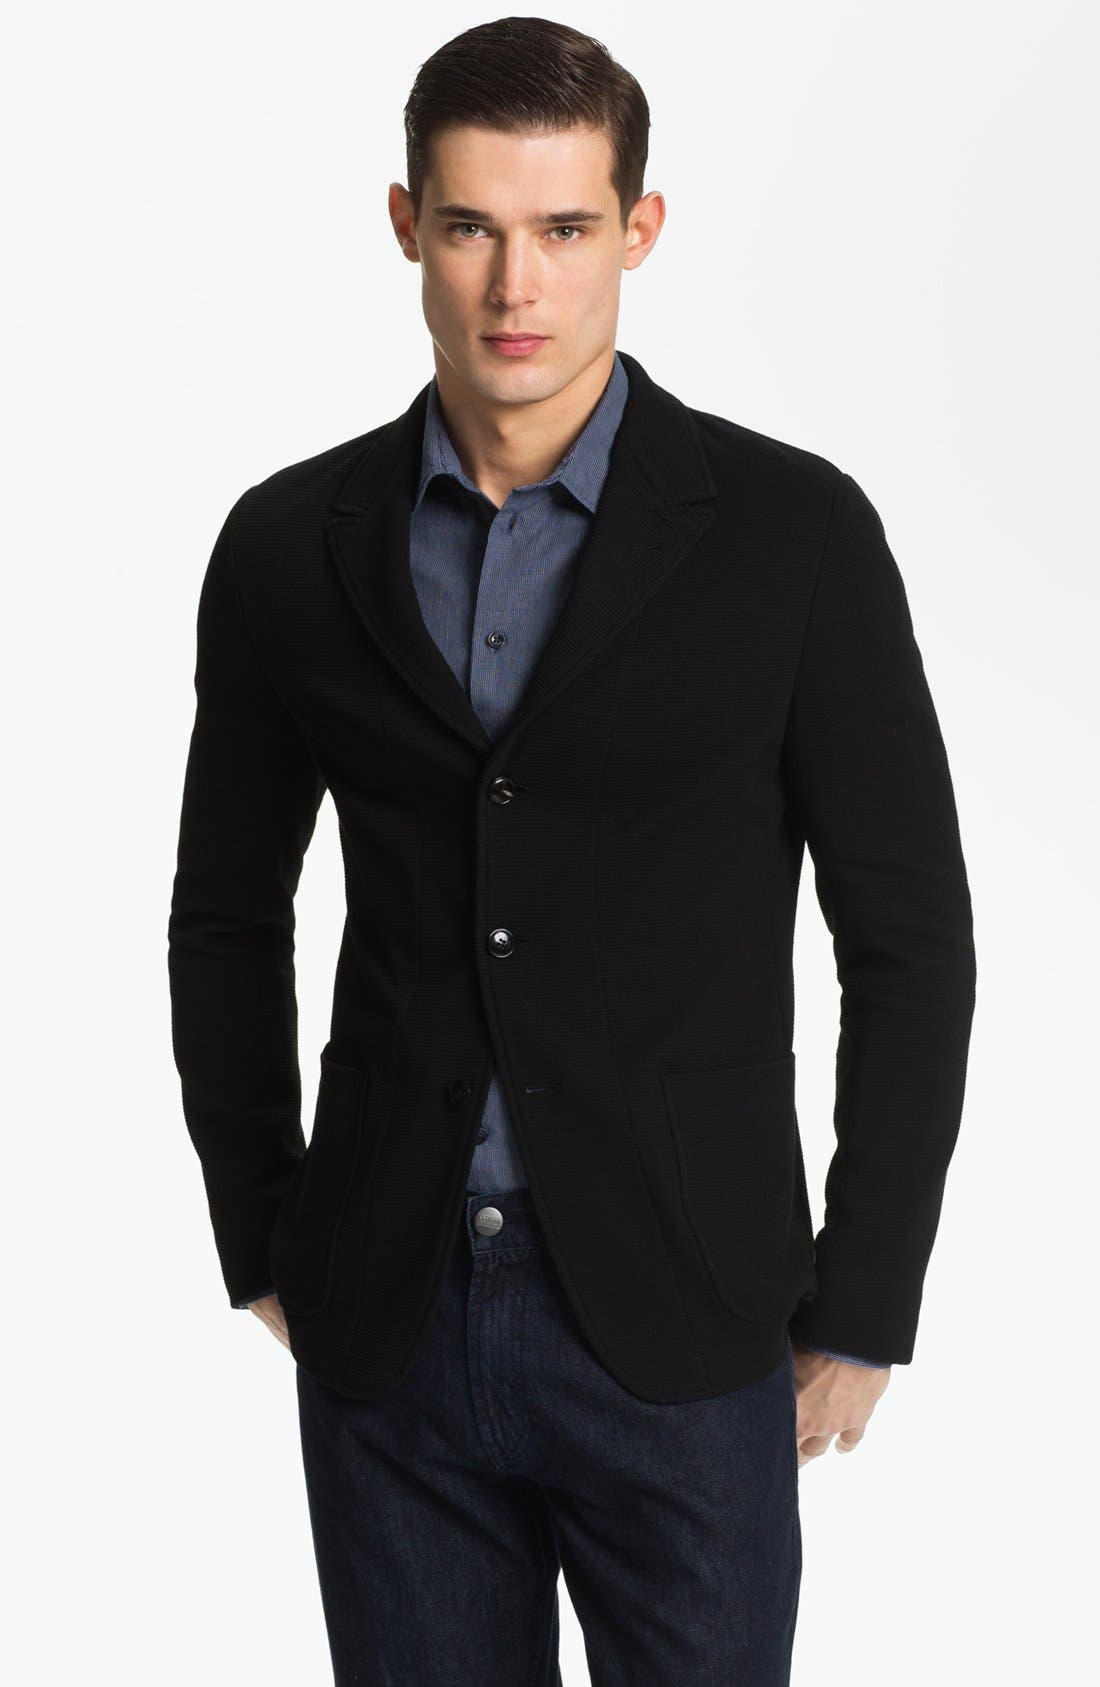 Main Image - Armani Collezioni Three Button Knit Sweater Jacket